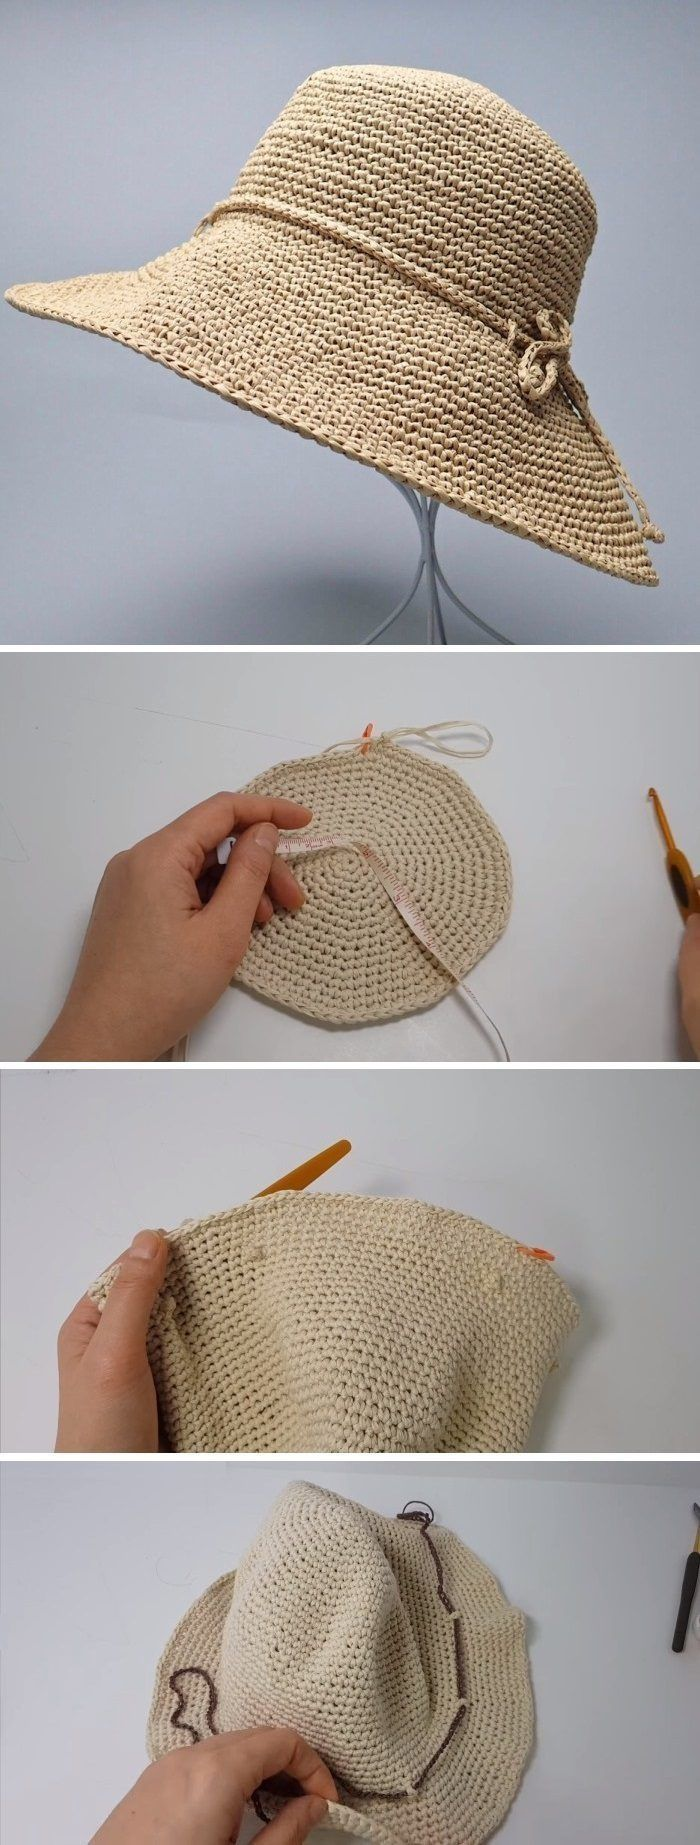 Crochet Summer Hat Tutorial #crochetelements